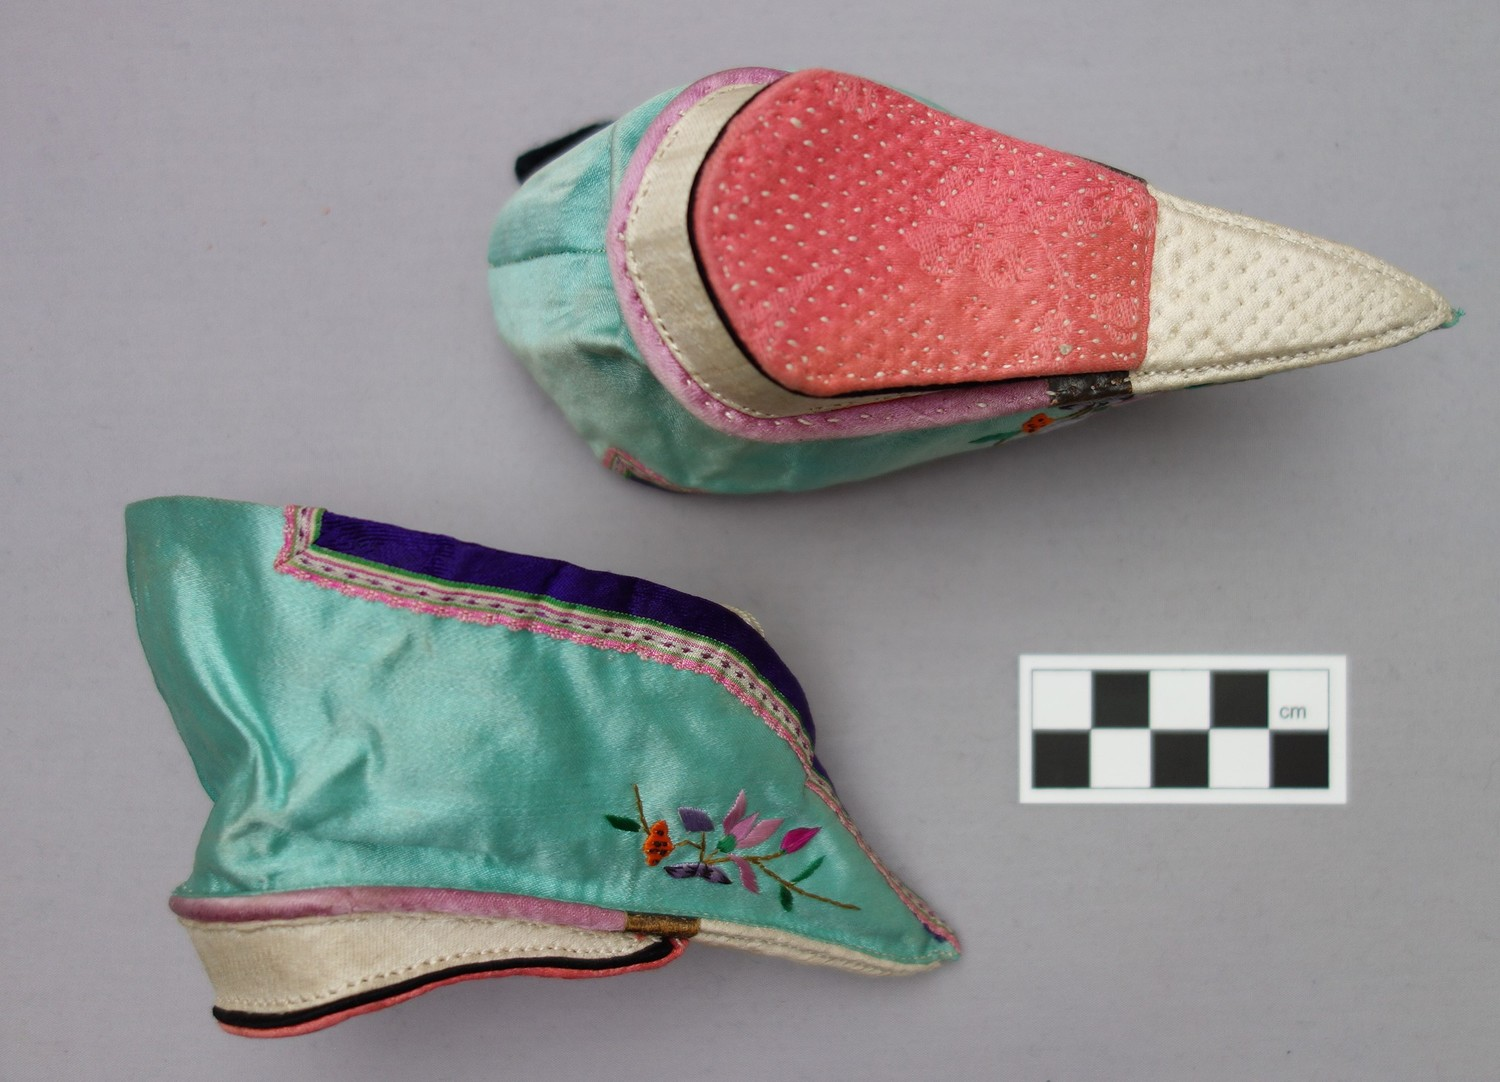 Pair of daily lotus shoes, early 20th century (TRC 2013.0063a-b).